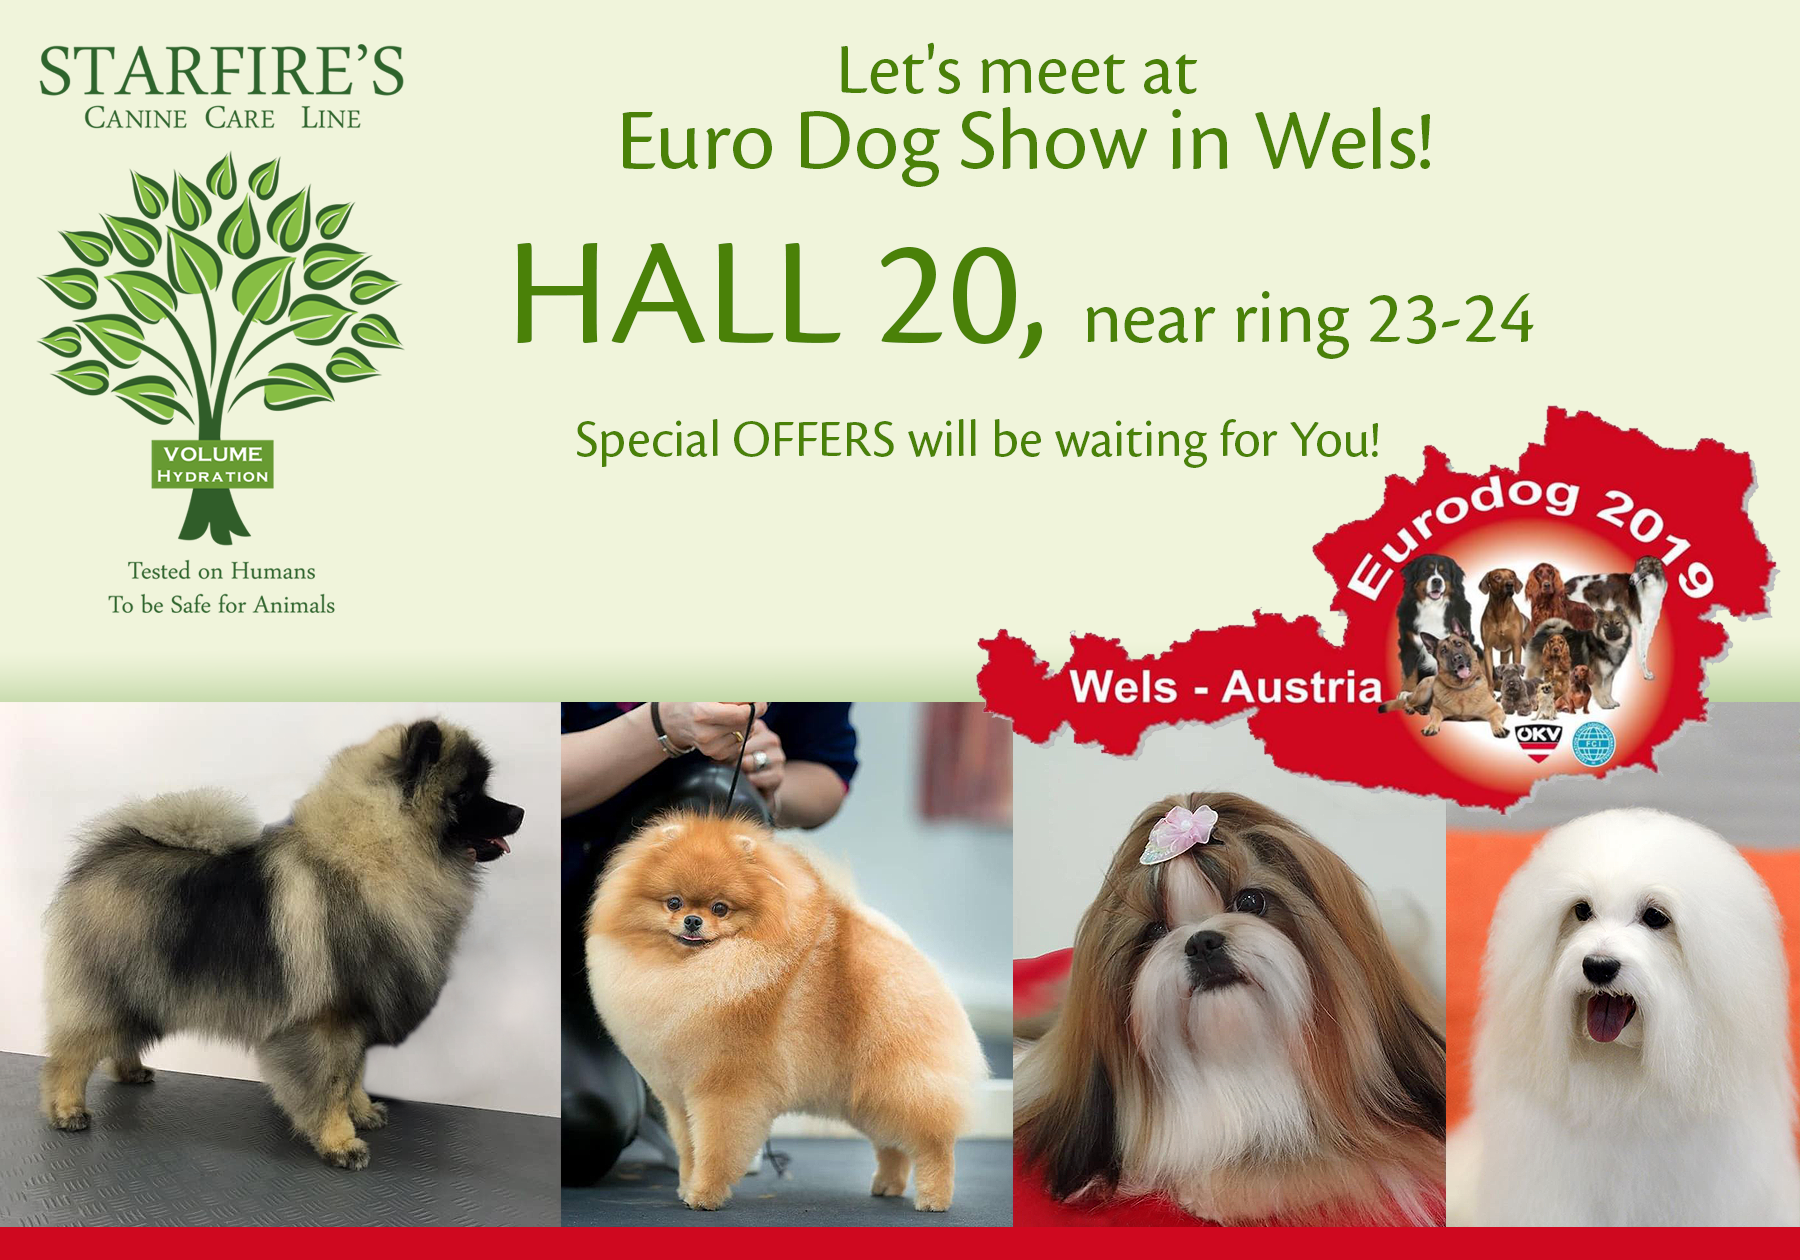 Meet us in European Dog Show- Wels! - Starfire's canine care